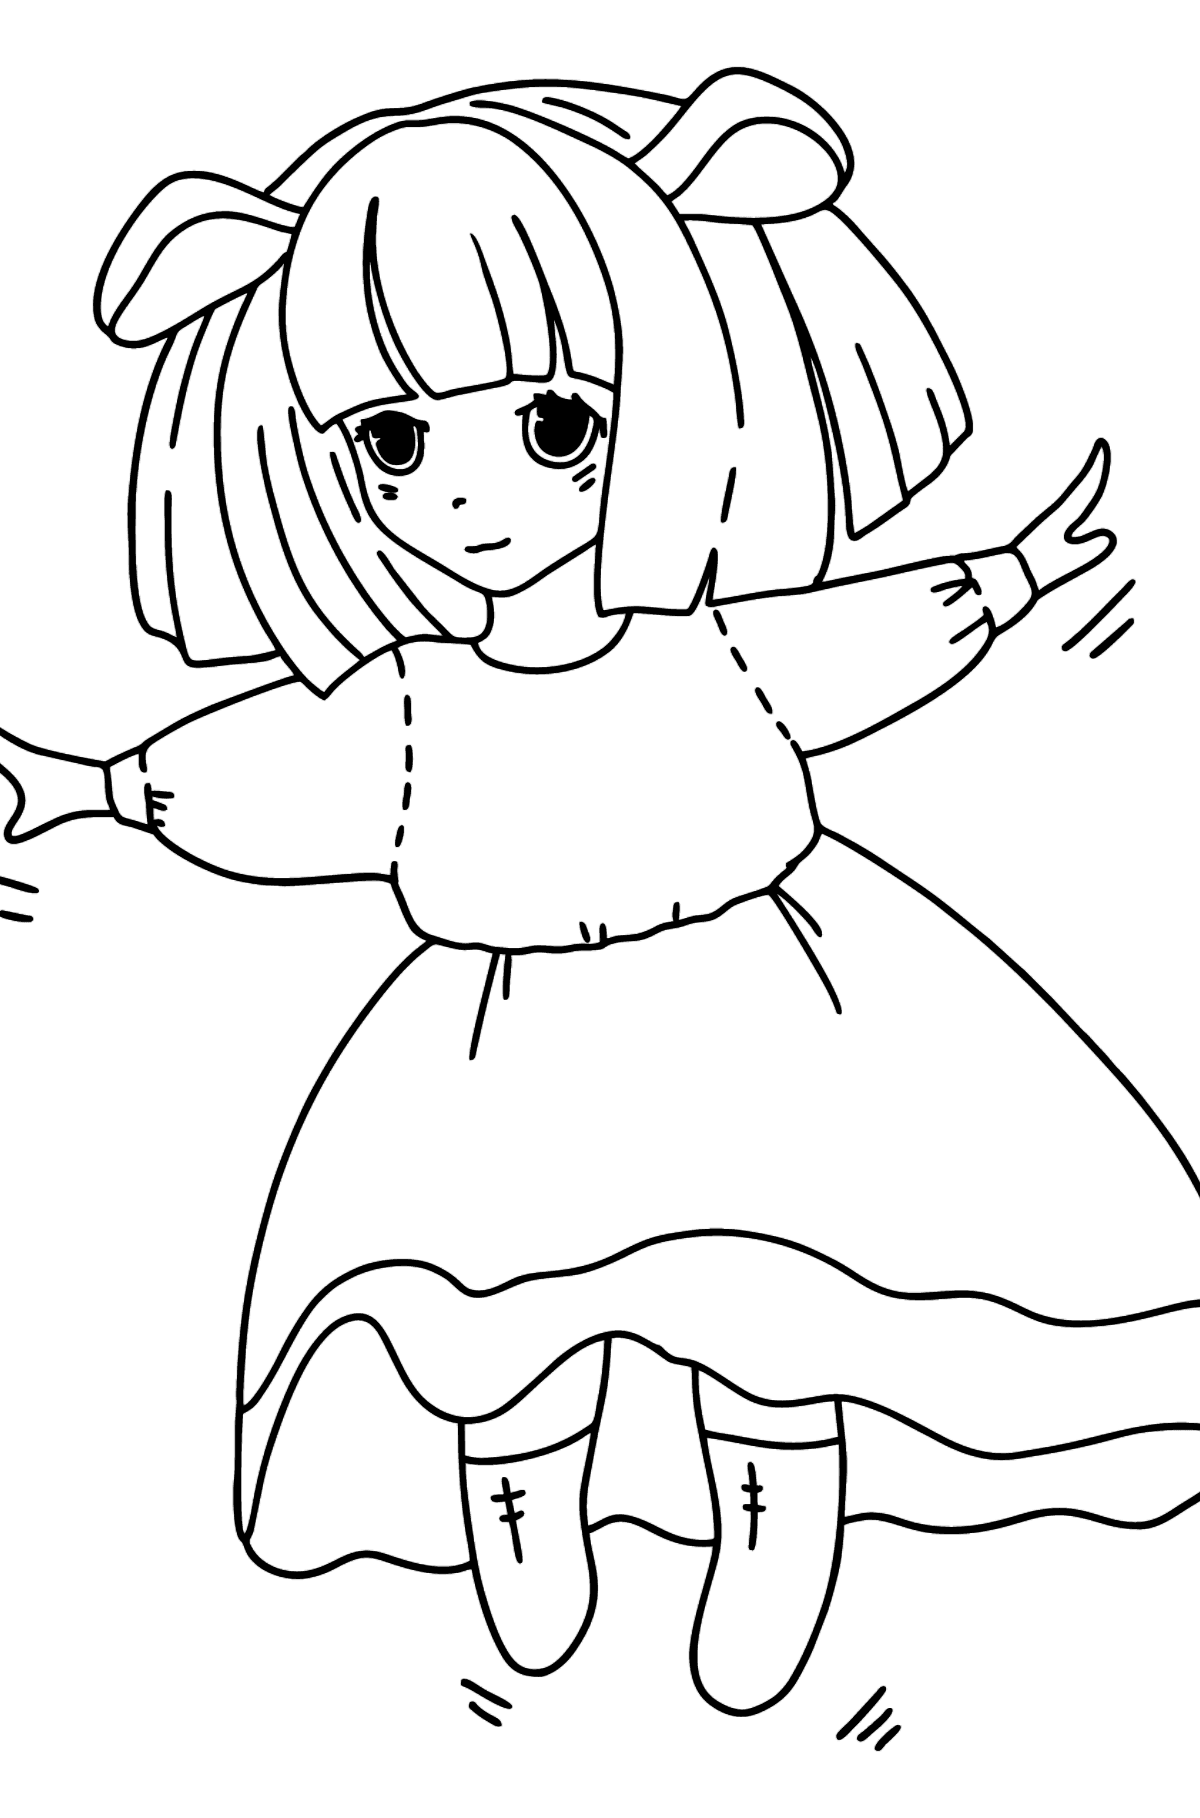 Anime Girl Dancing coloring page - Coloring Pages for Kids